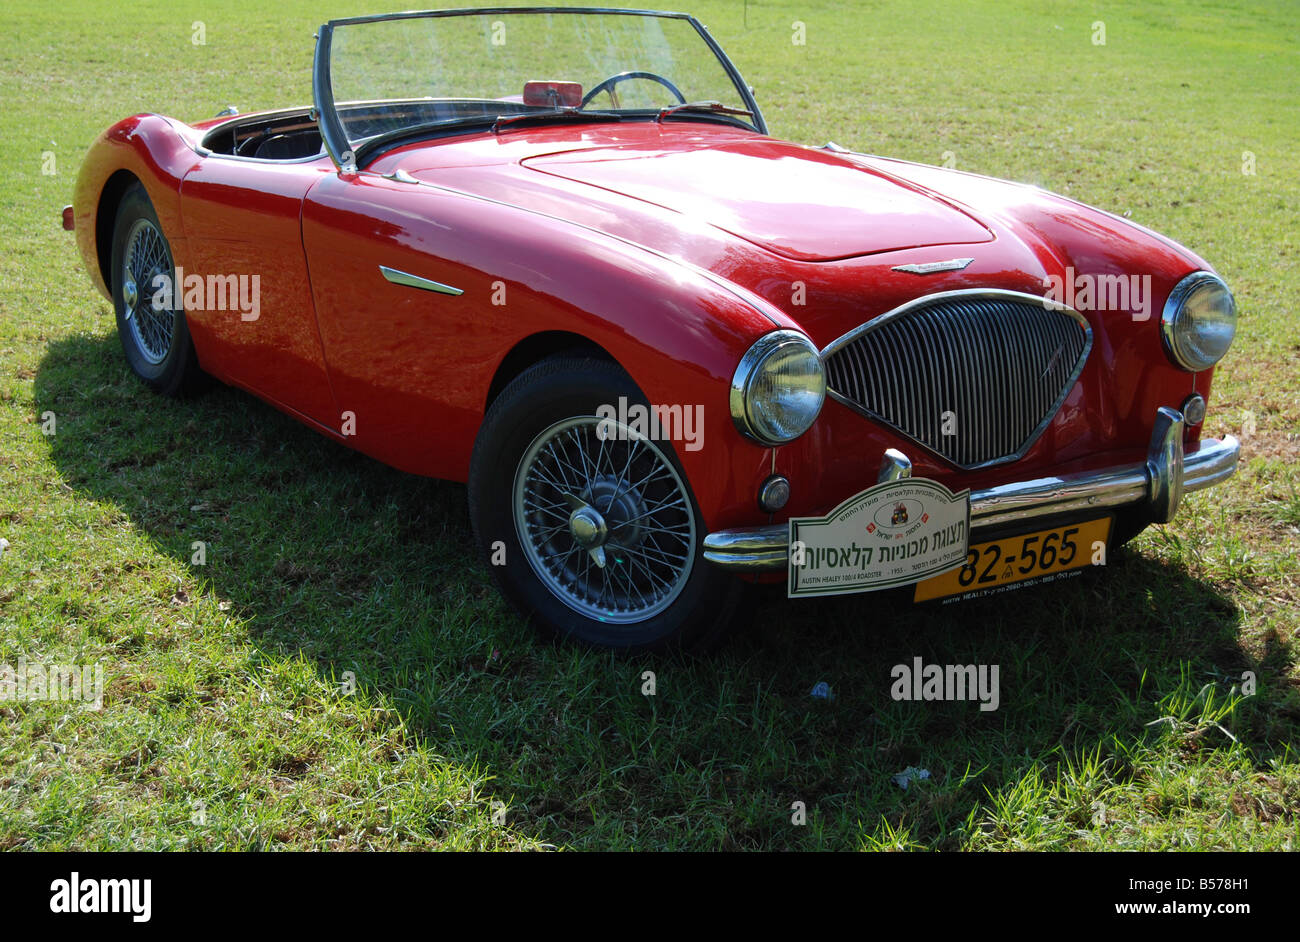 Austin Healey 100 4 Roadster 1955 Stockbild